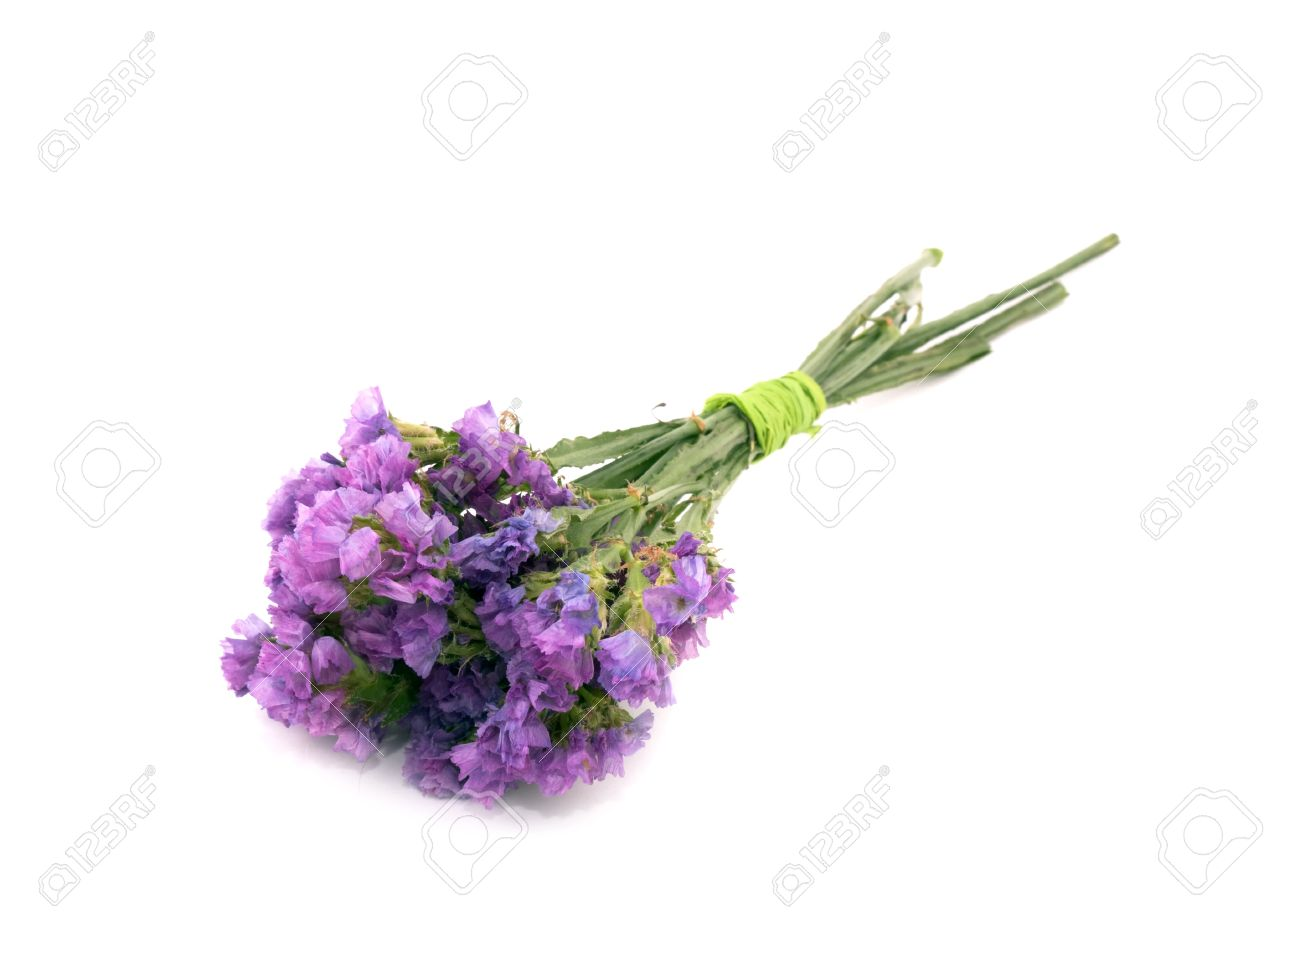 Small Bouquet Of Pink Statice Flowers On White Background Stock